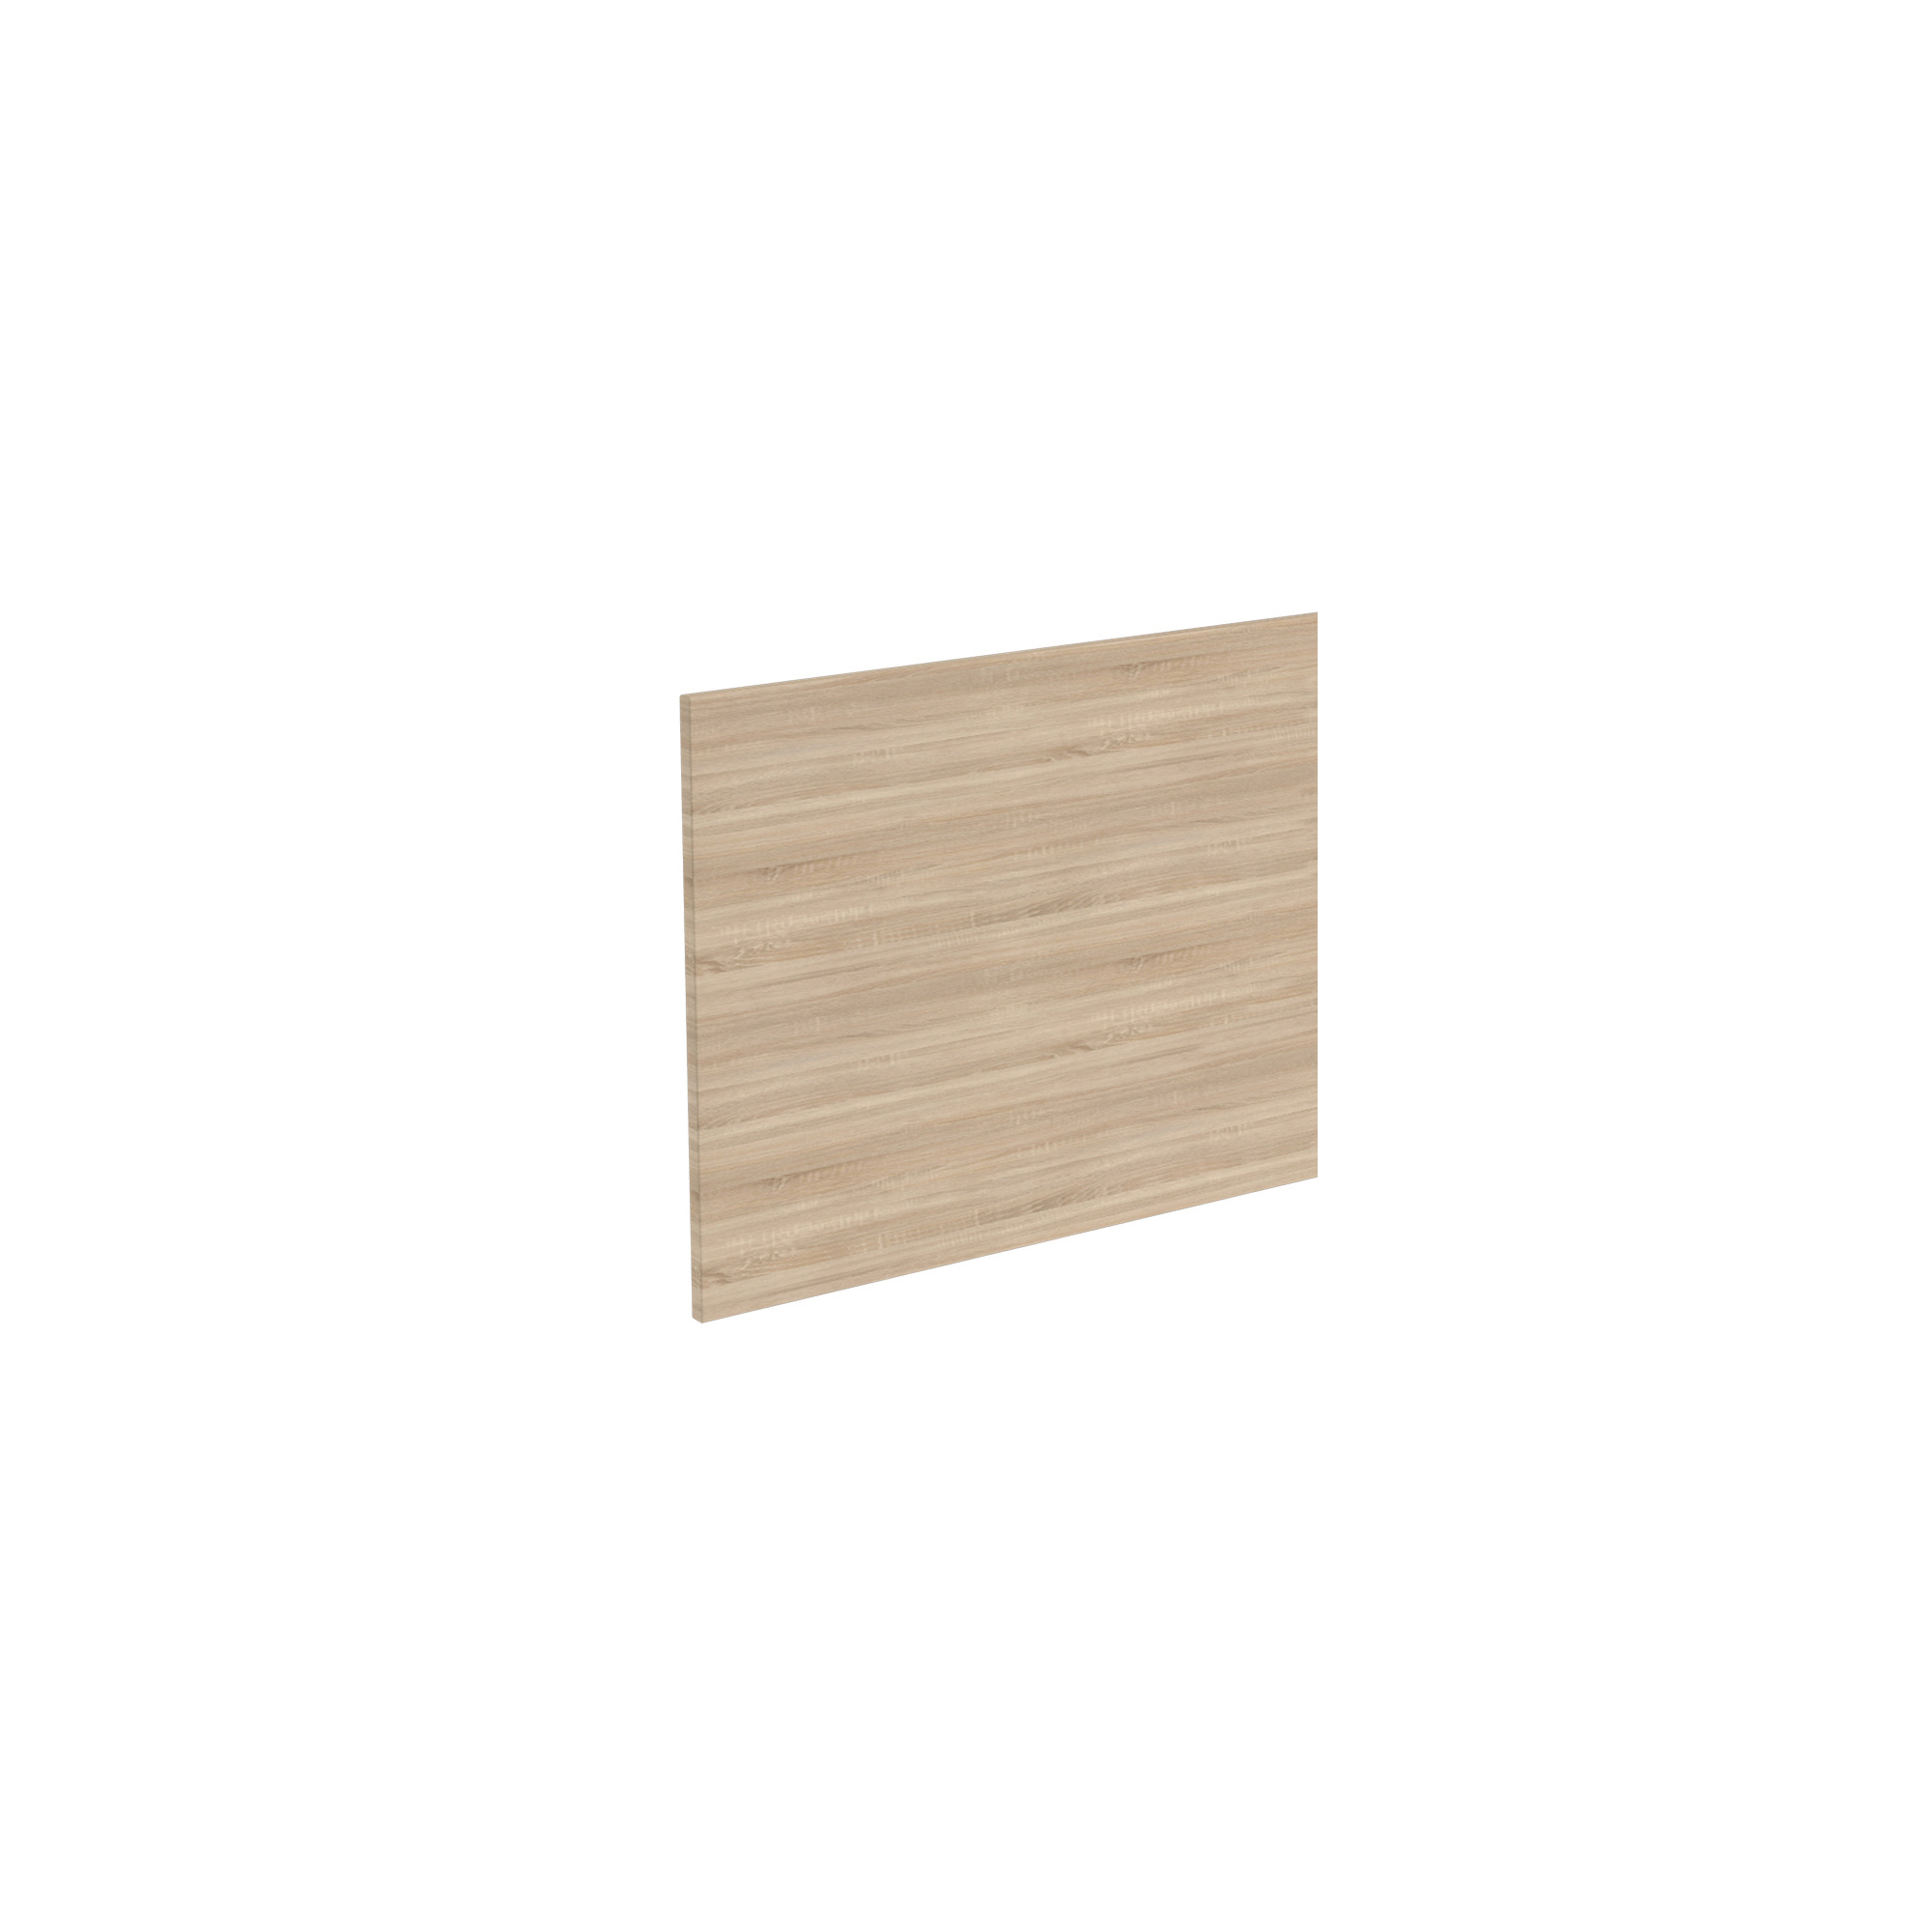 K-Vit Ikon 800mm Bath Panel - Natural Oak